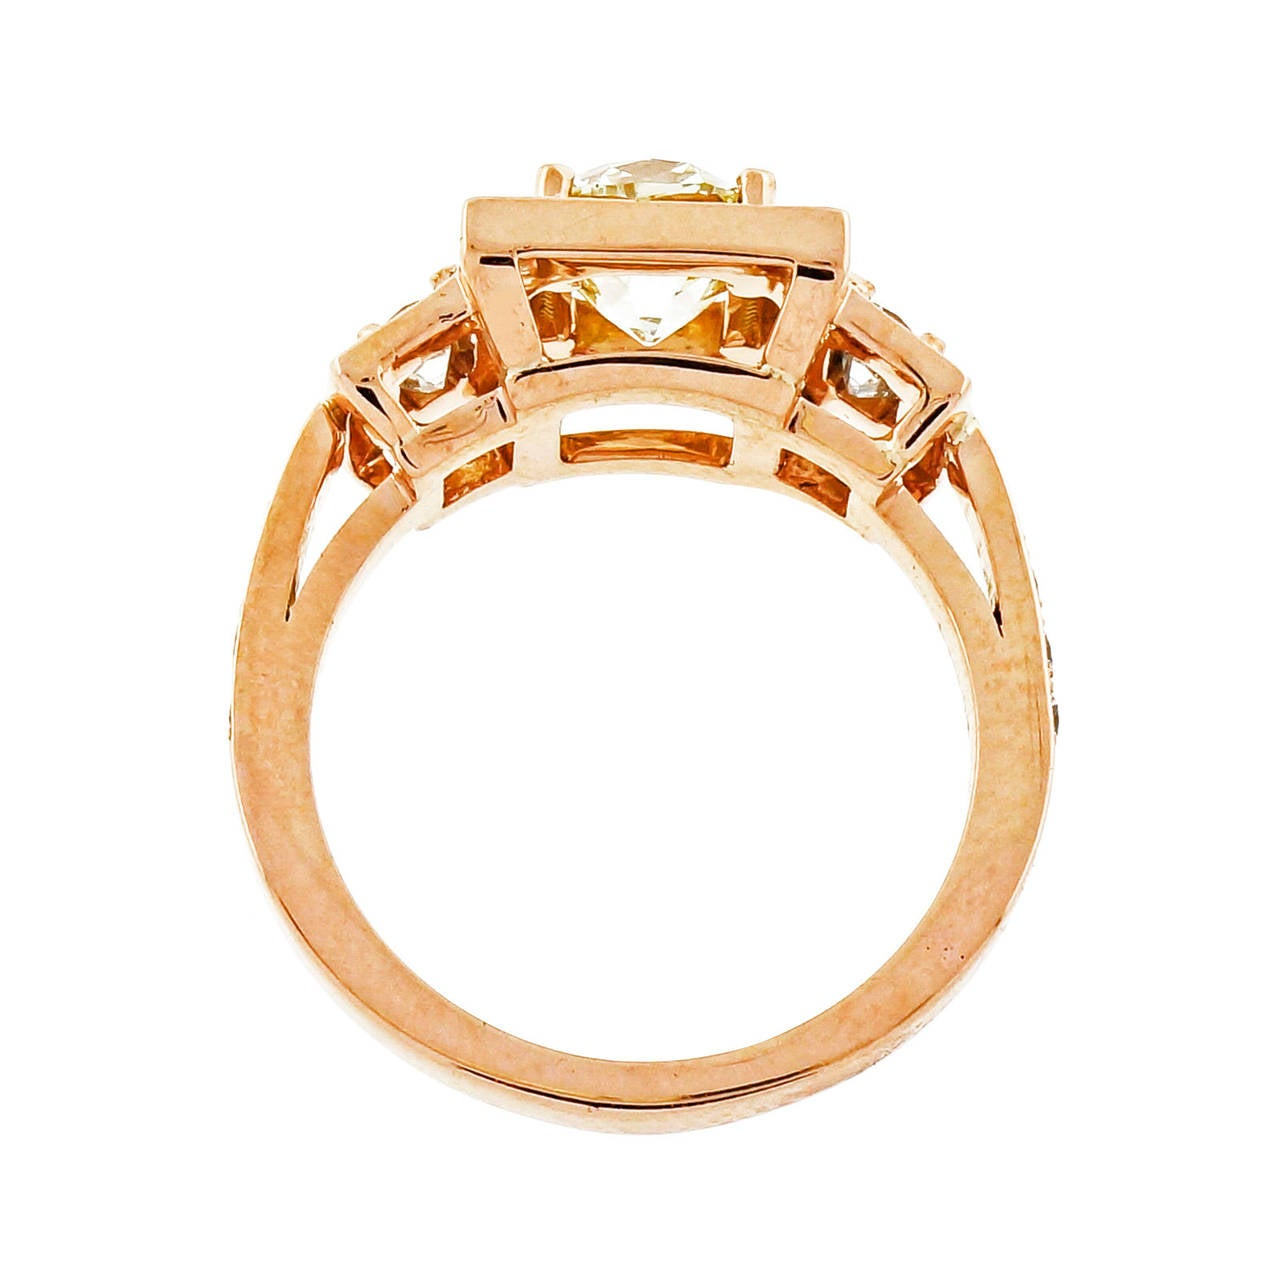 Peter Suchy 1.26 Carat Diamond Rose Gold Triple Halo Engagement Ring 6